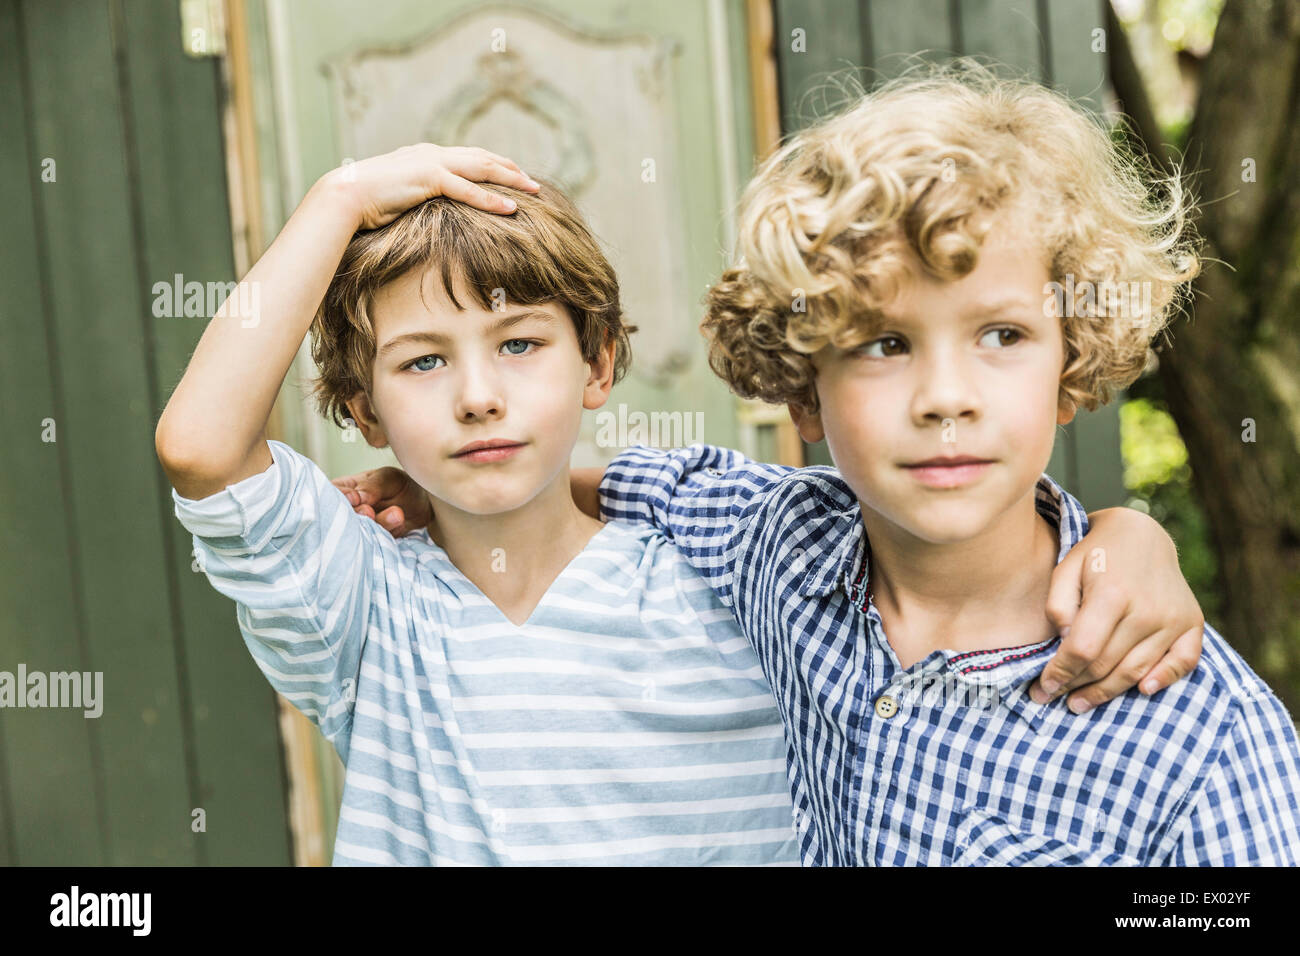 Portrait of two young brothers in garden - Stock Image